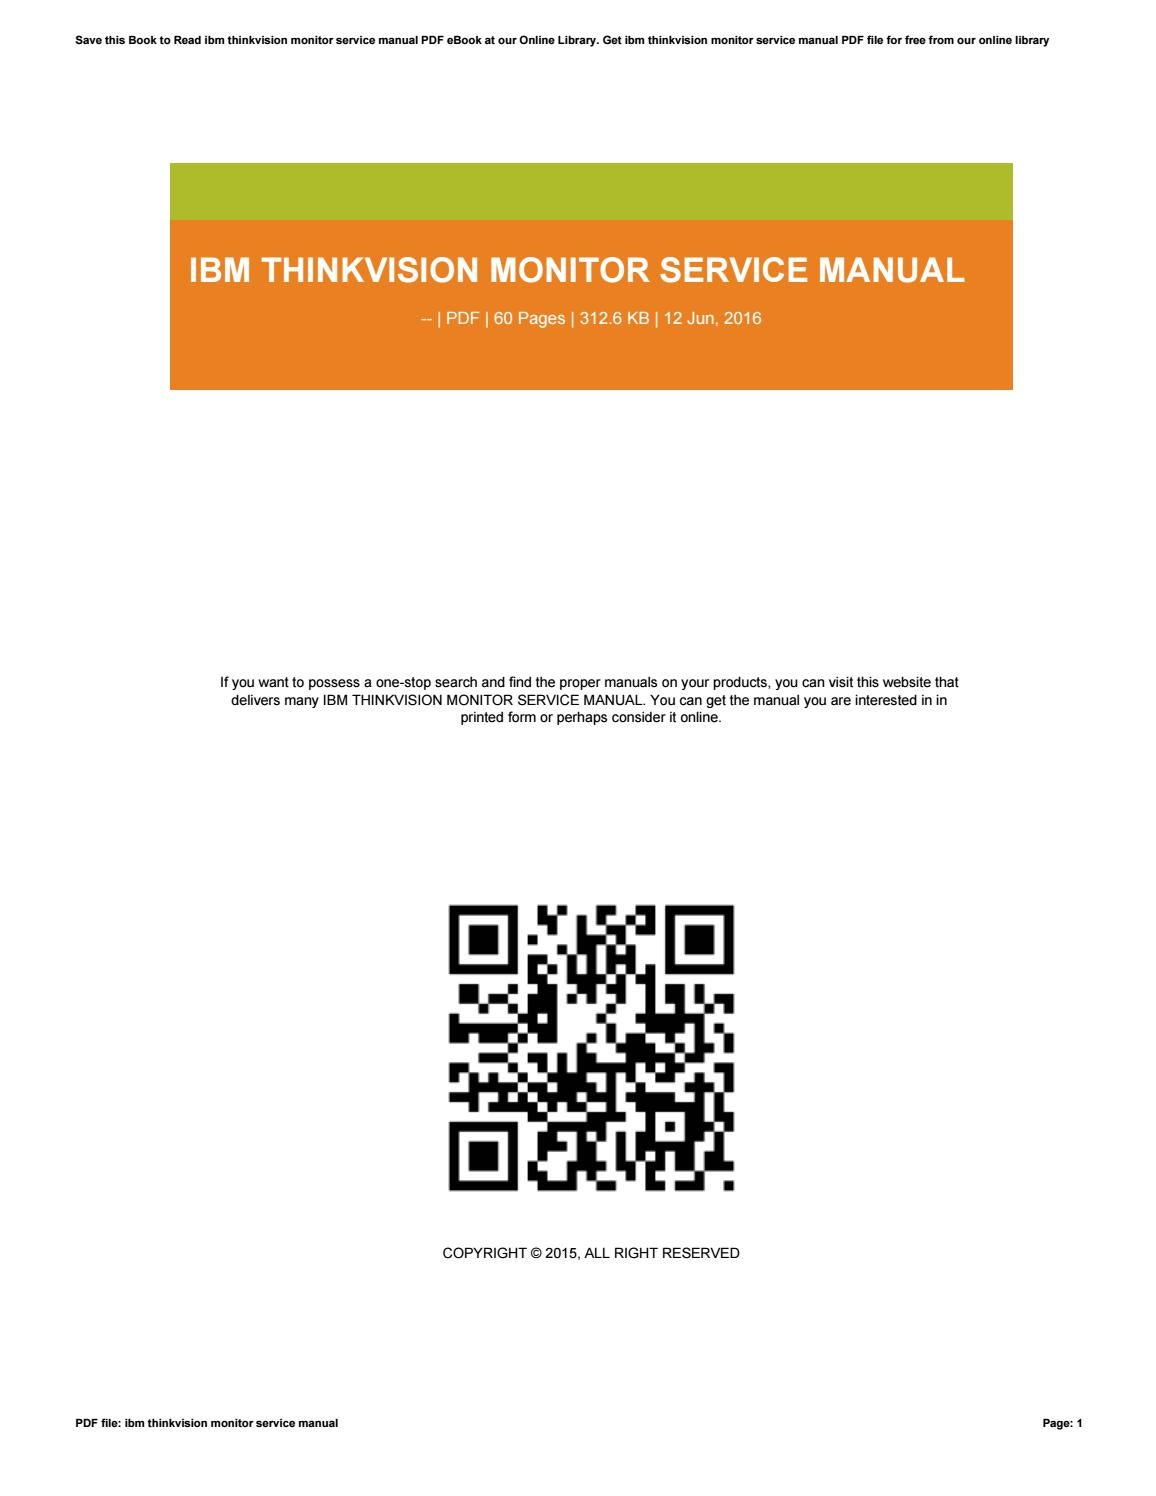 ibm monitor service manual open source user manual u2022 rh dramatic varieties com IBM Monitor 2002 ibm crt monitor service manual